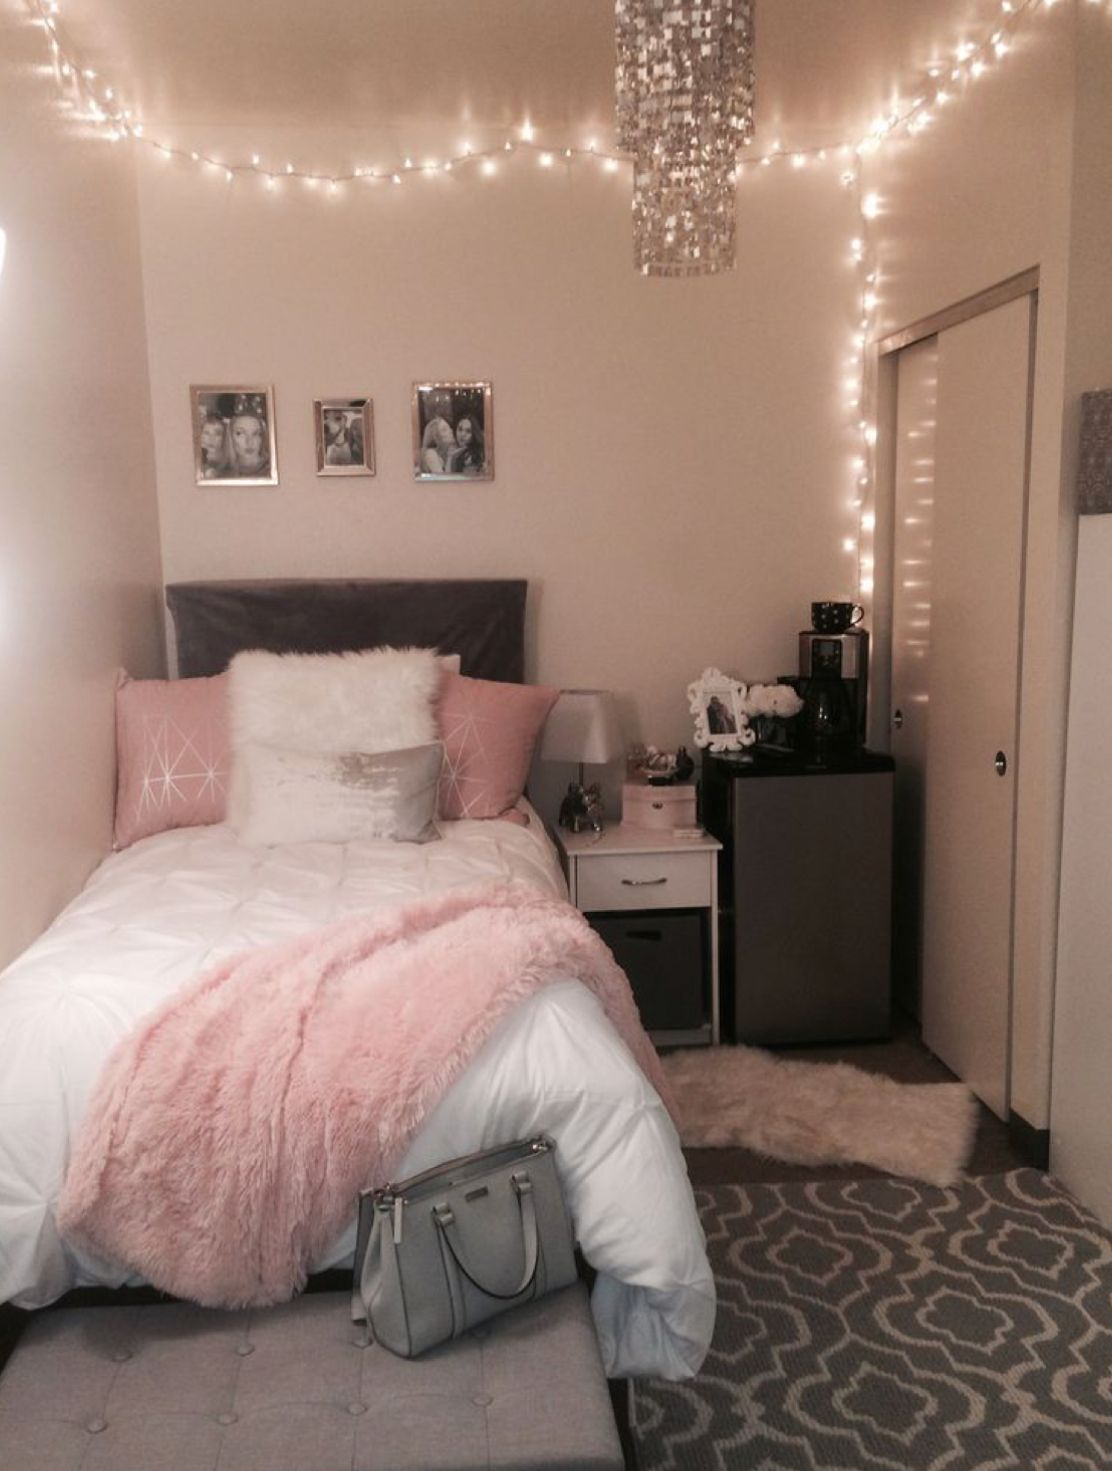 20 Bedroom Color Ideas To Make Your Room Awesome Dorm Room Decor Small Room Bedroom Room Decor